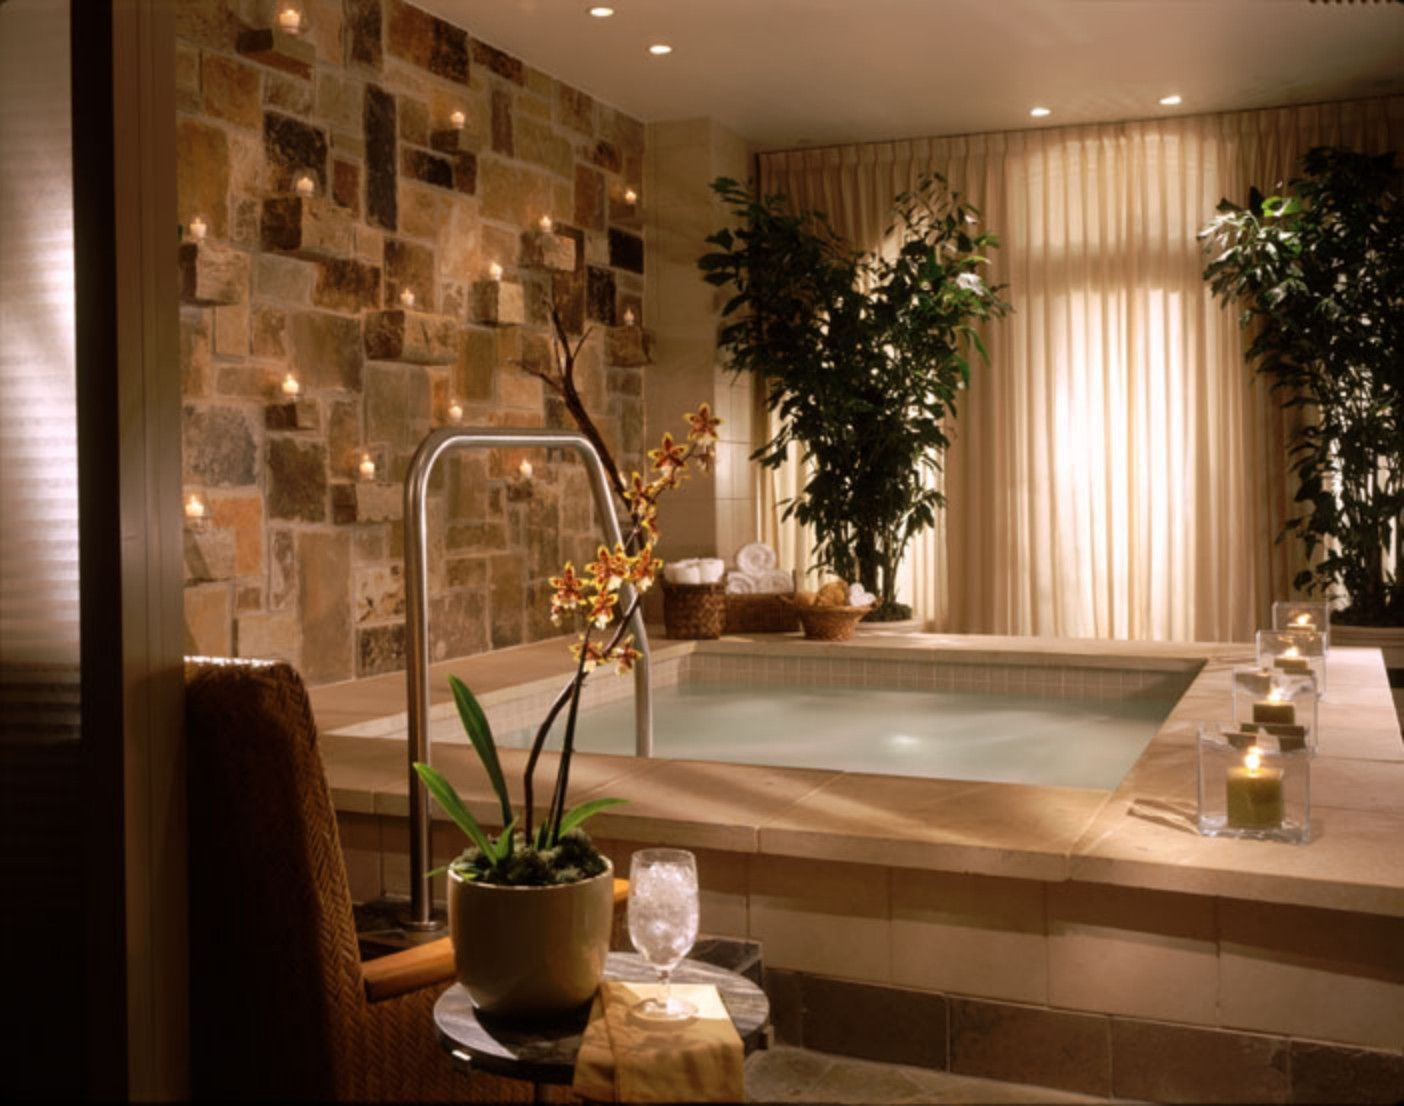 Badarmaturen Christina The Spa At Mokara Hotel Spa Is San Antonio S Only Four Star Spa